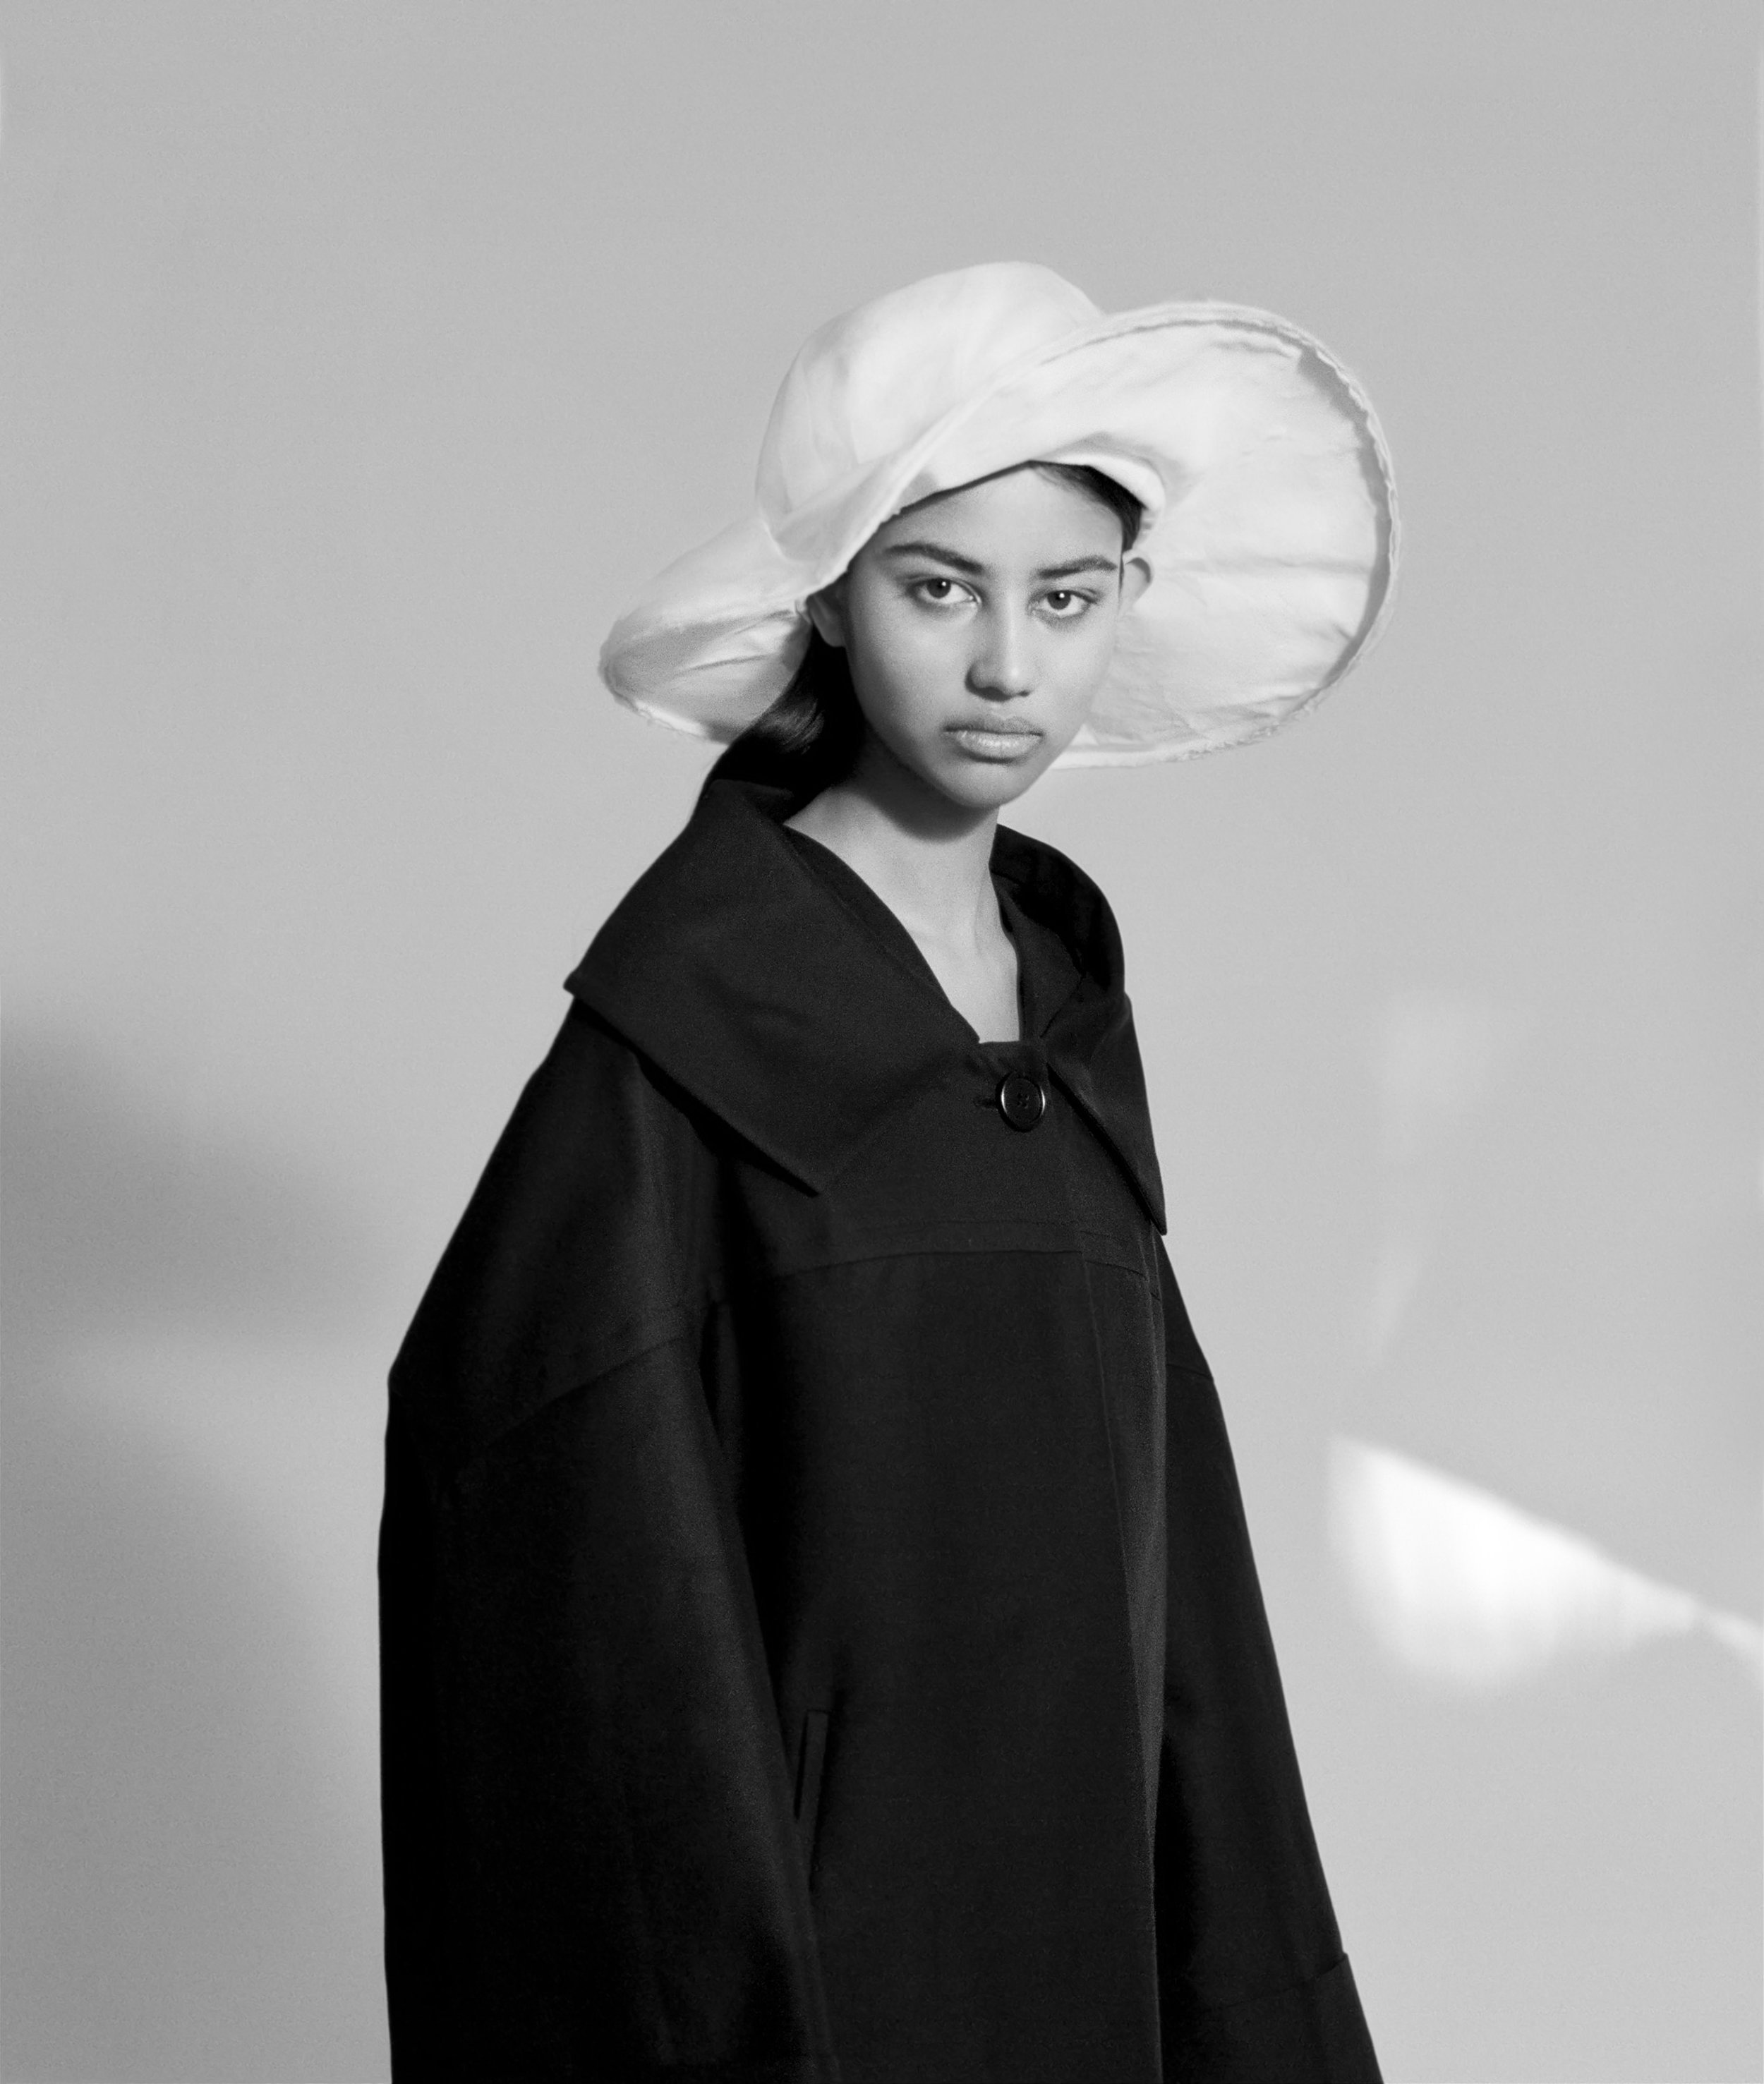 Varsha wears Marni coat and hat     Photography by  Daphne Nguyen   Styling by  Miguel Urbina Tan   Beauty by  Claire Thomson   Hair by  Joel Foreman   Models: Varsha and Lim Lee @ Chadwick Models